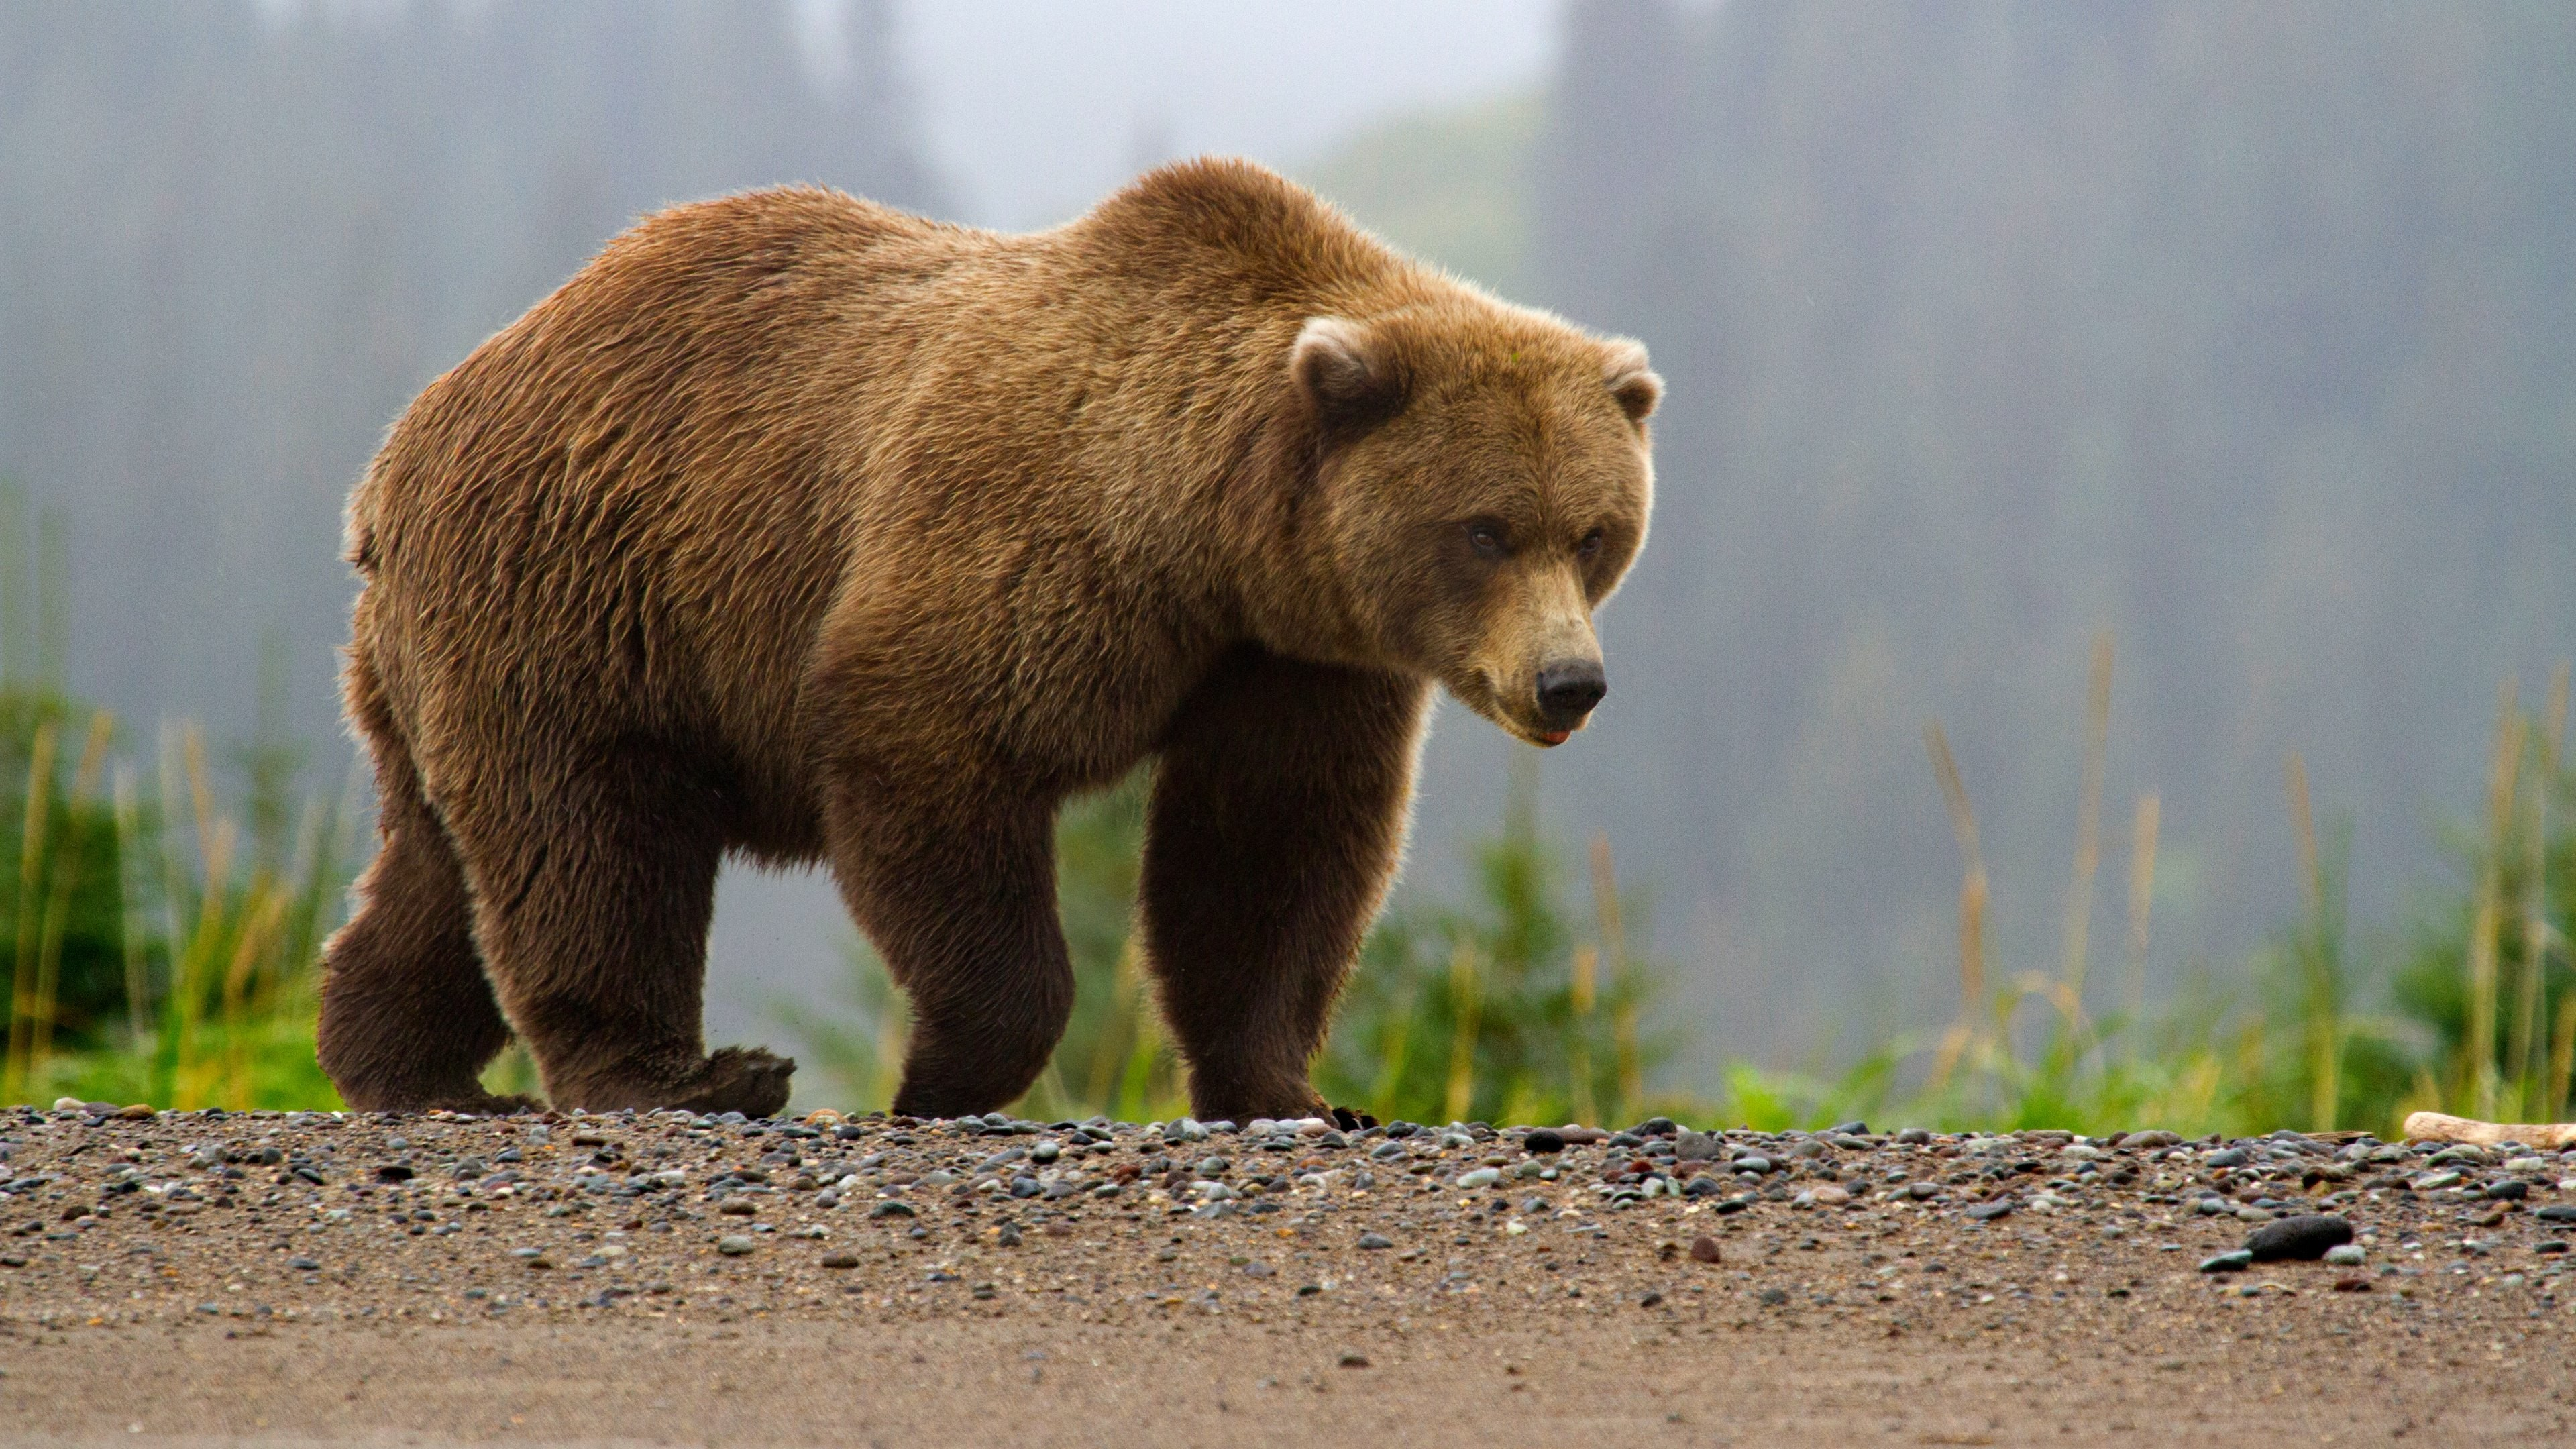 Spiders at Spiderzrule - the best site in the world about Photos of brown bears